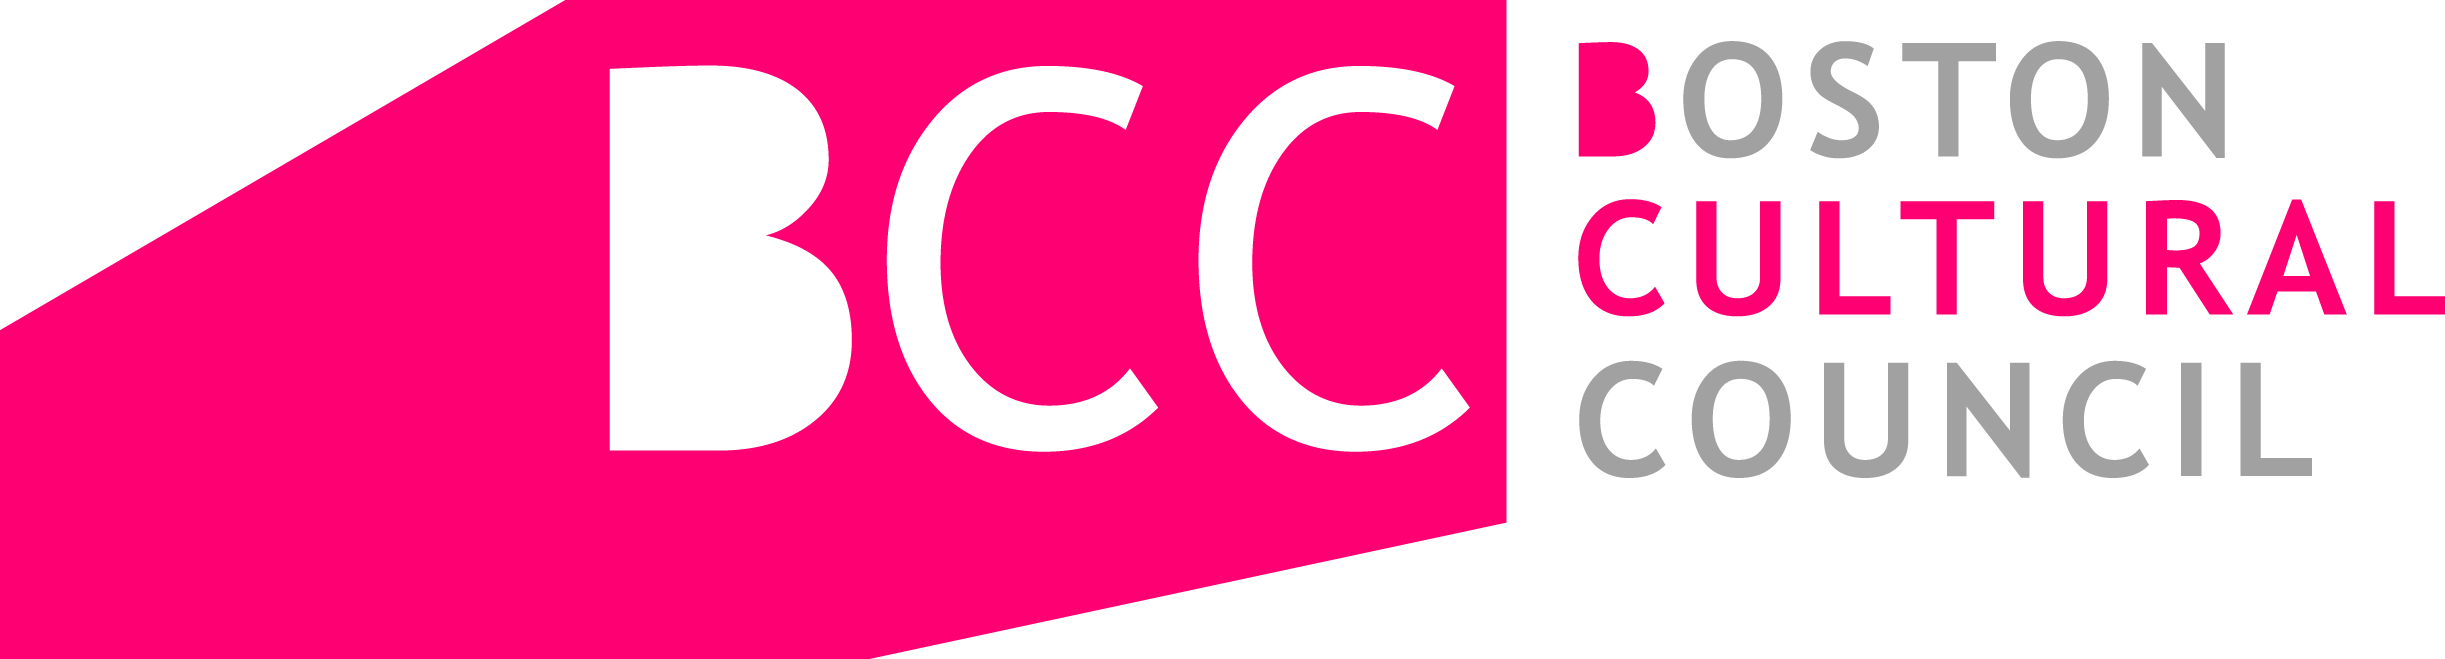 Boston Cultural Council Logo.jpg